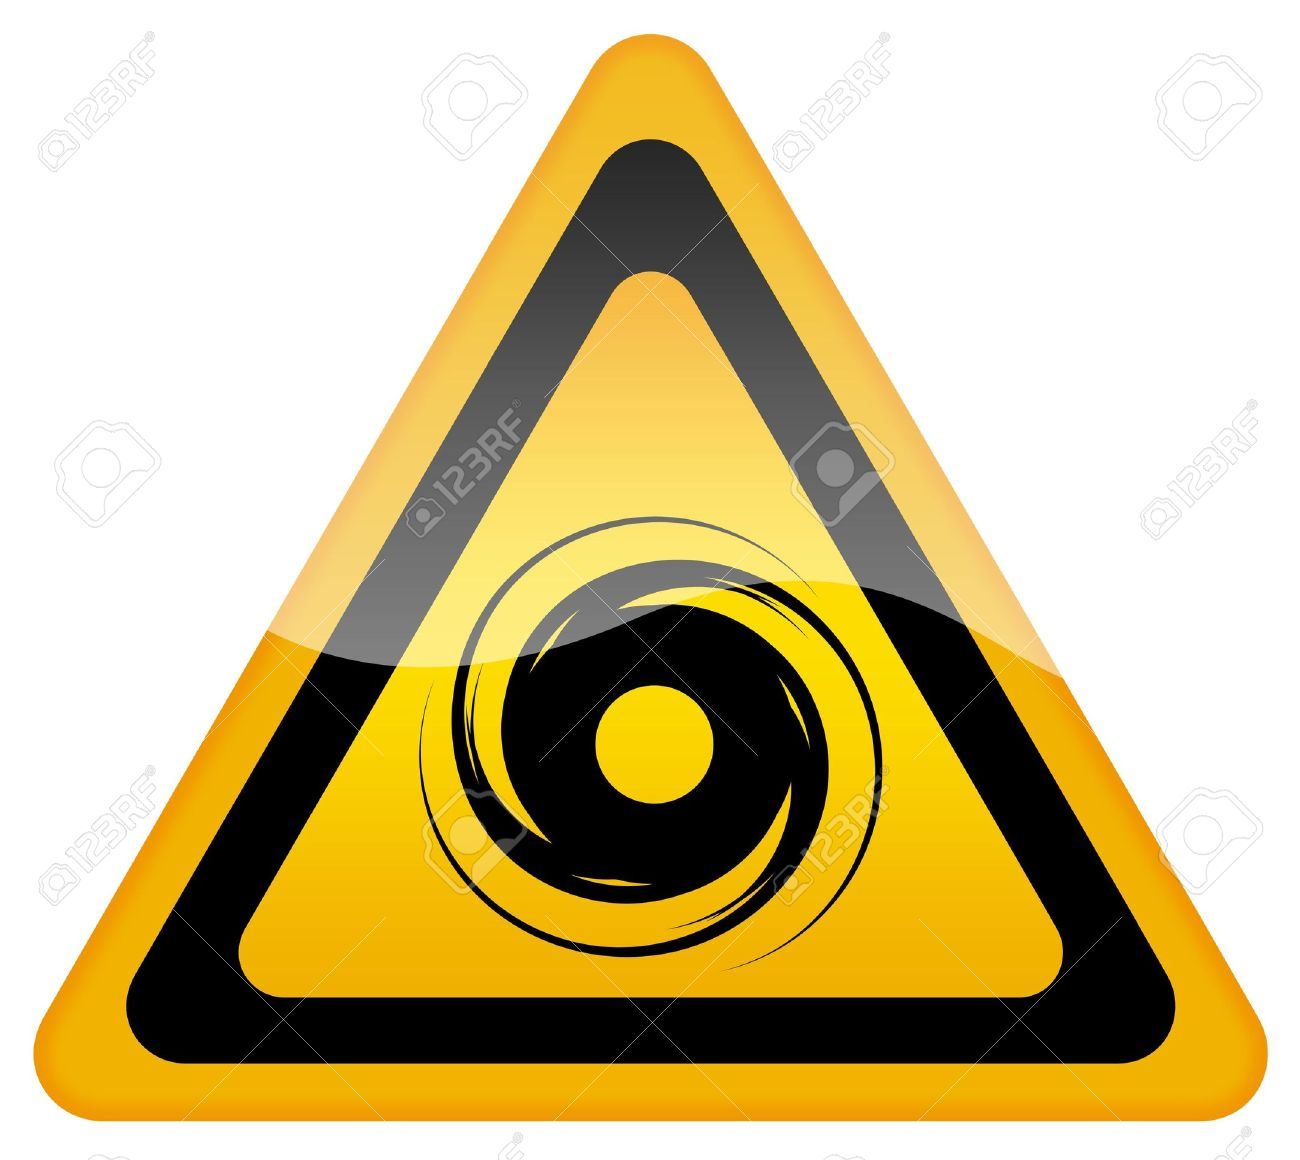 Hurricane Warning Sign Stock Photo Picture And Royalty Free Image